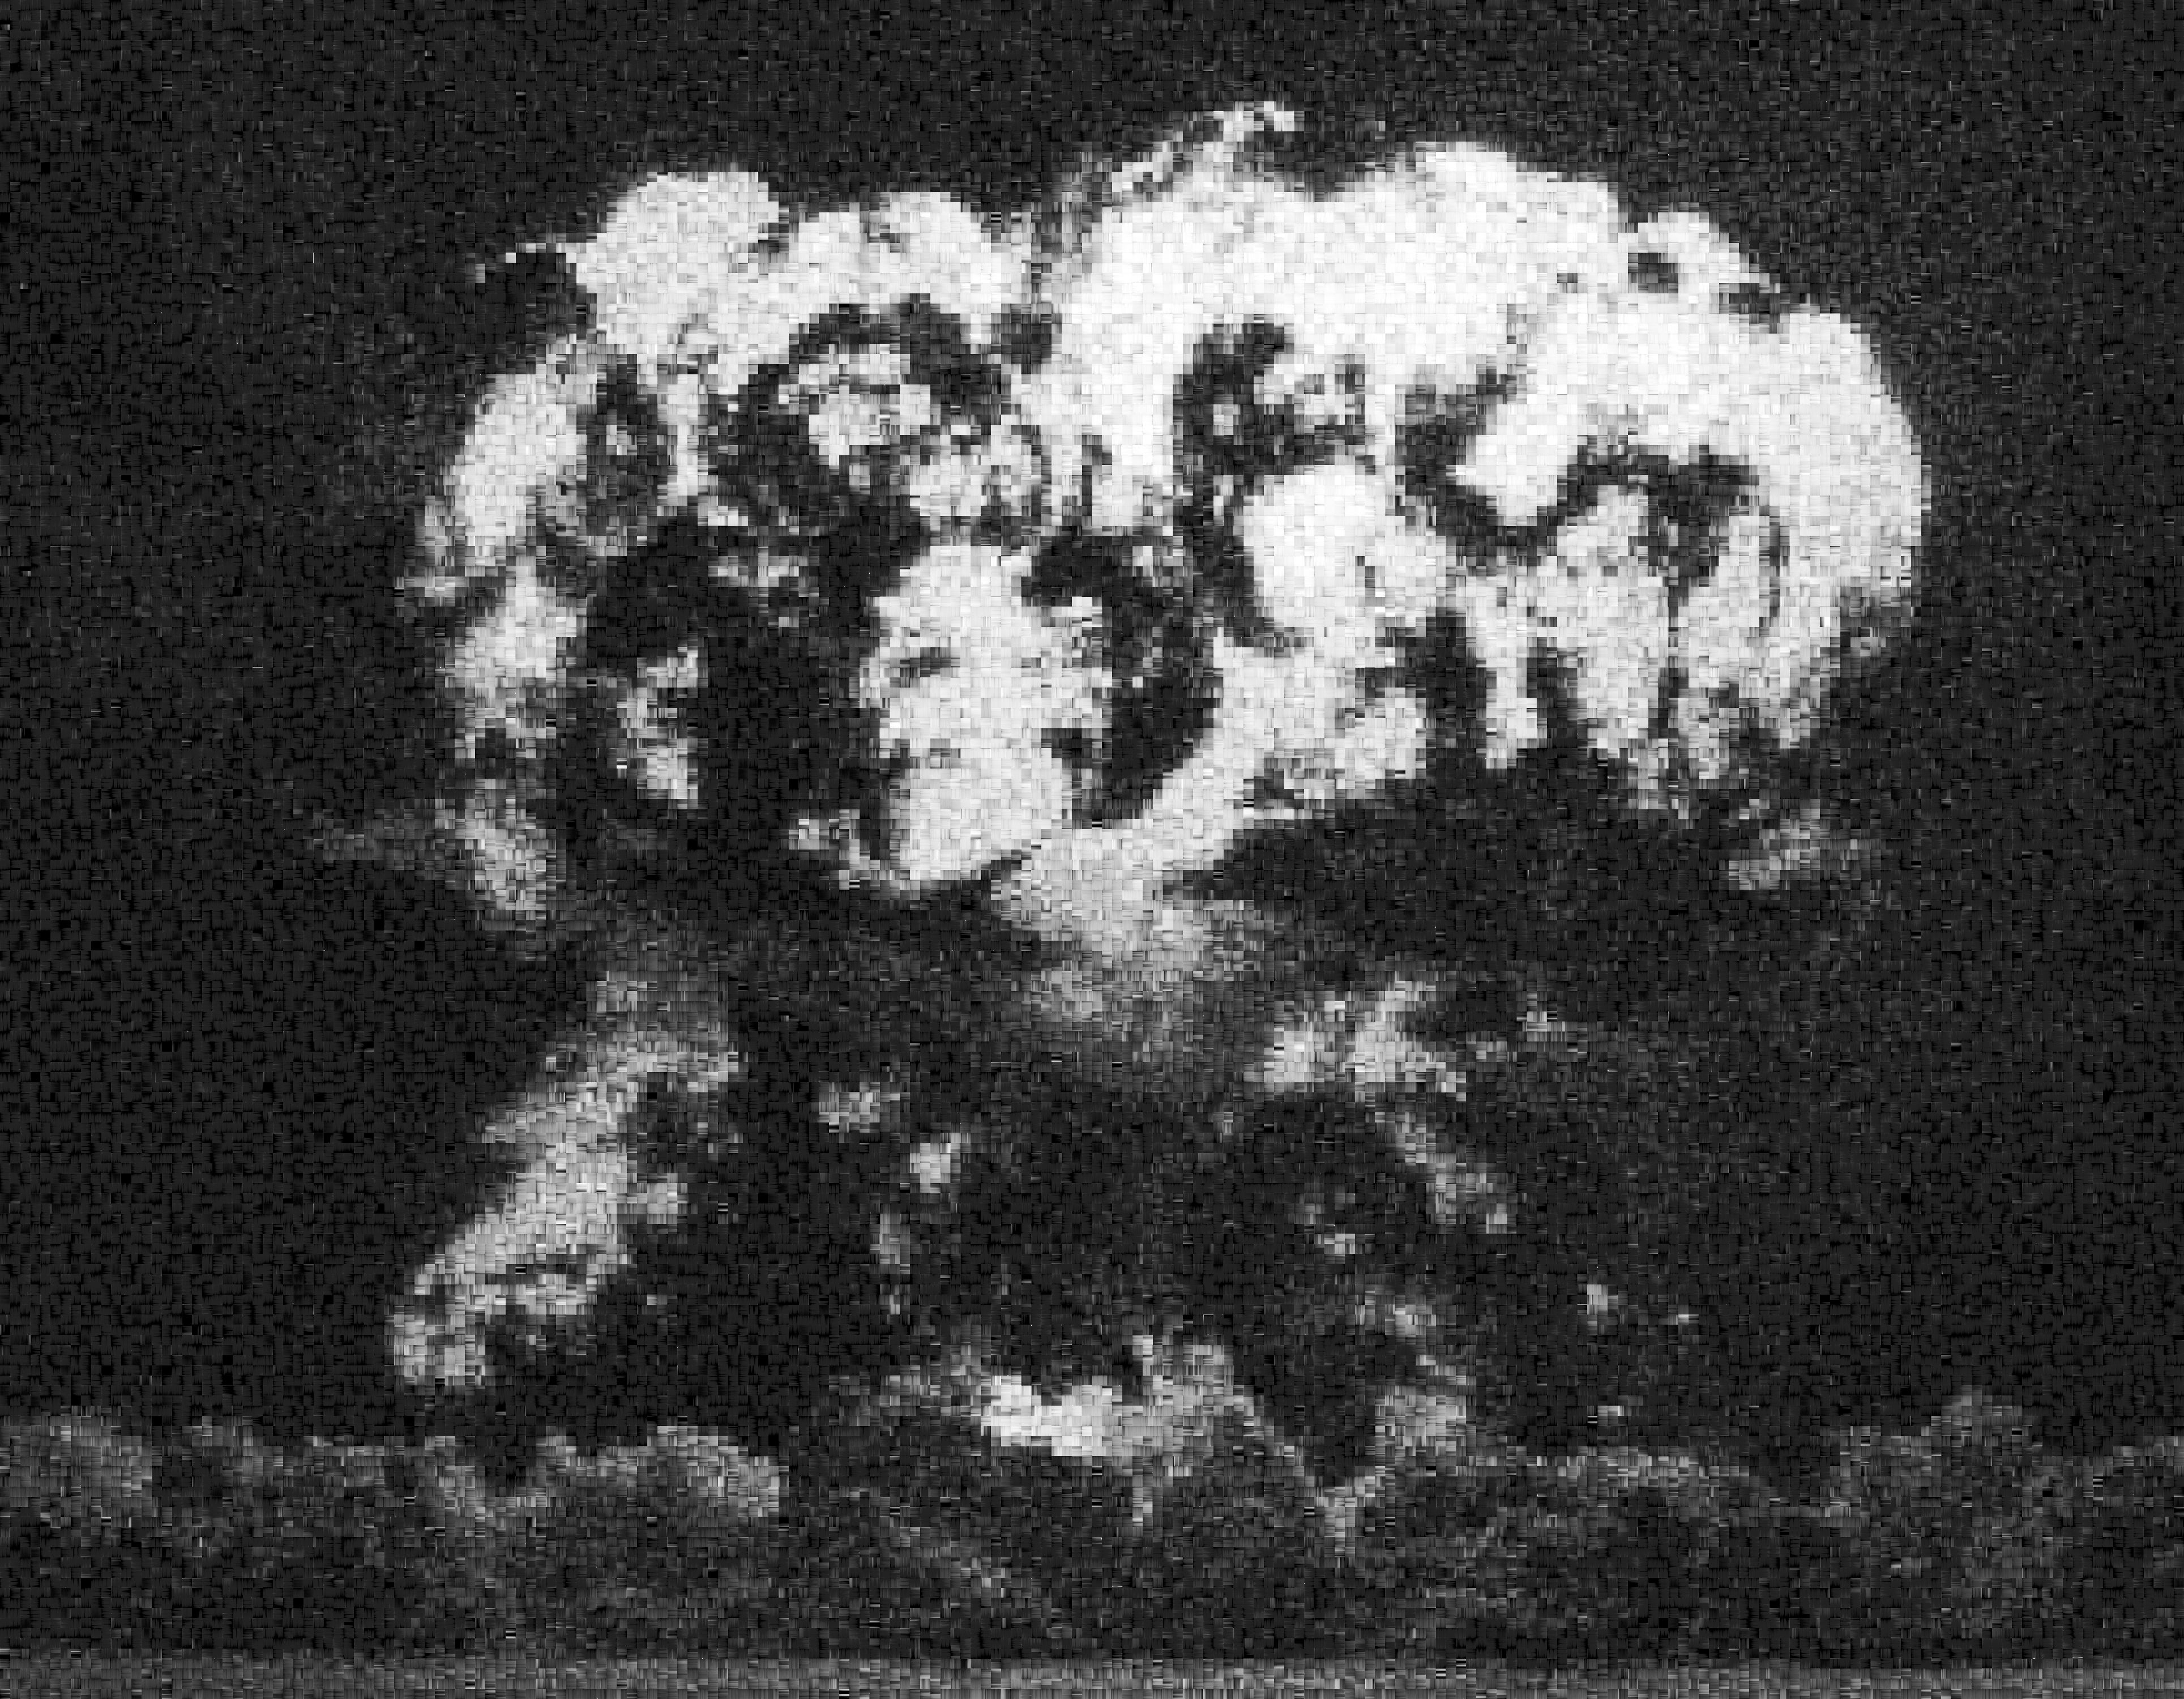 Operation Hardtack: Apple, Pixelated Image of Declassified Military Testing